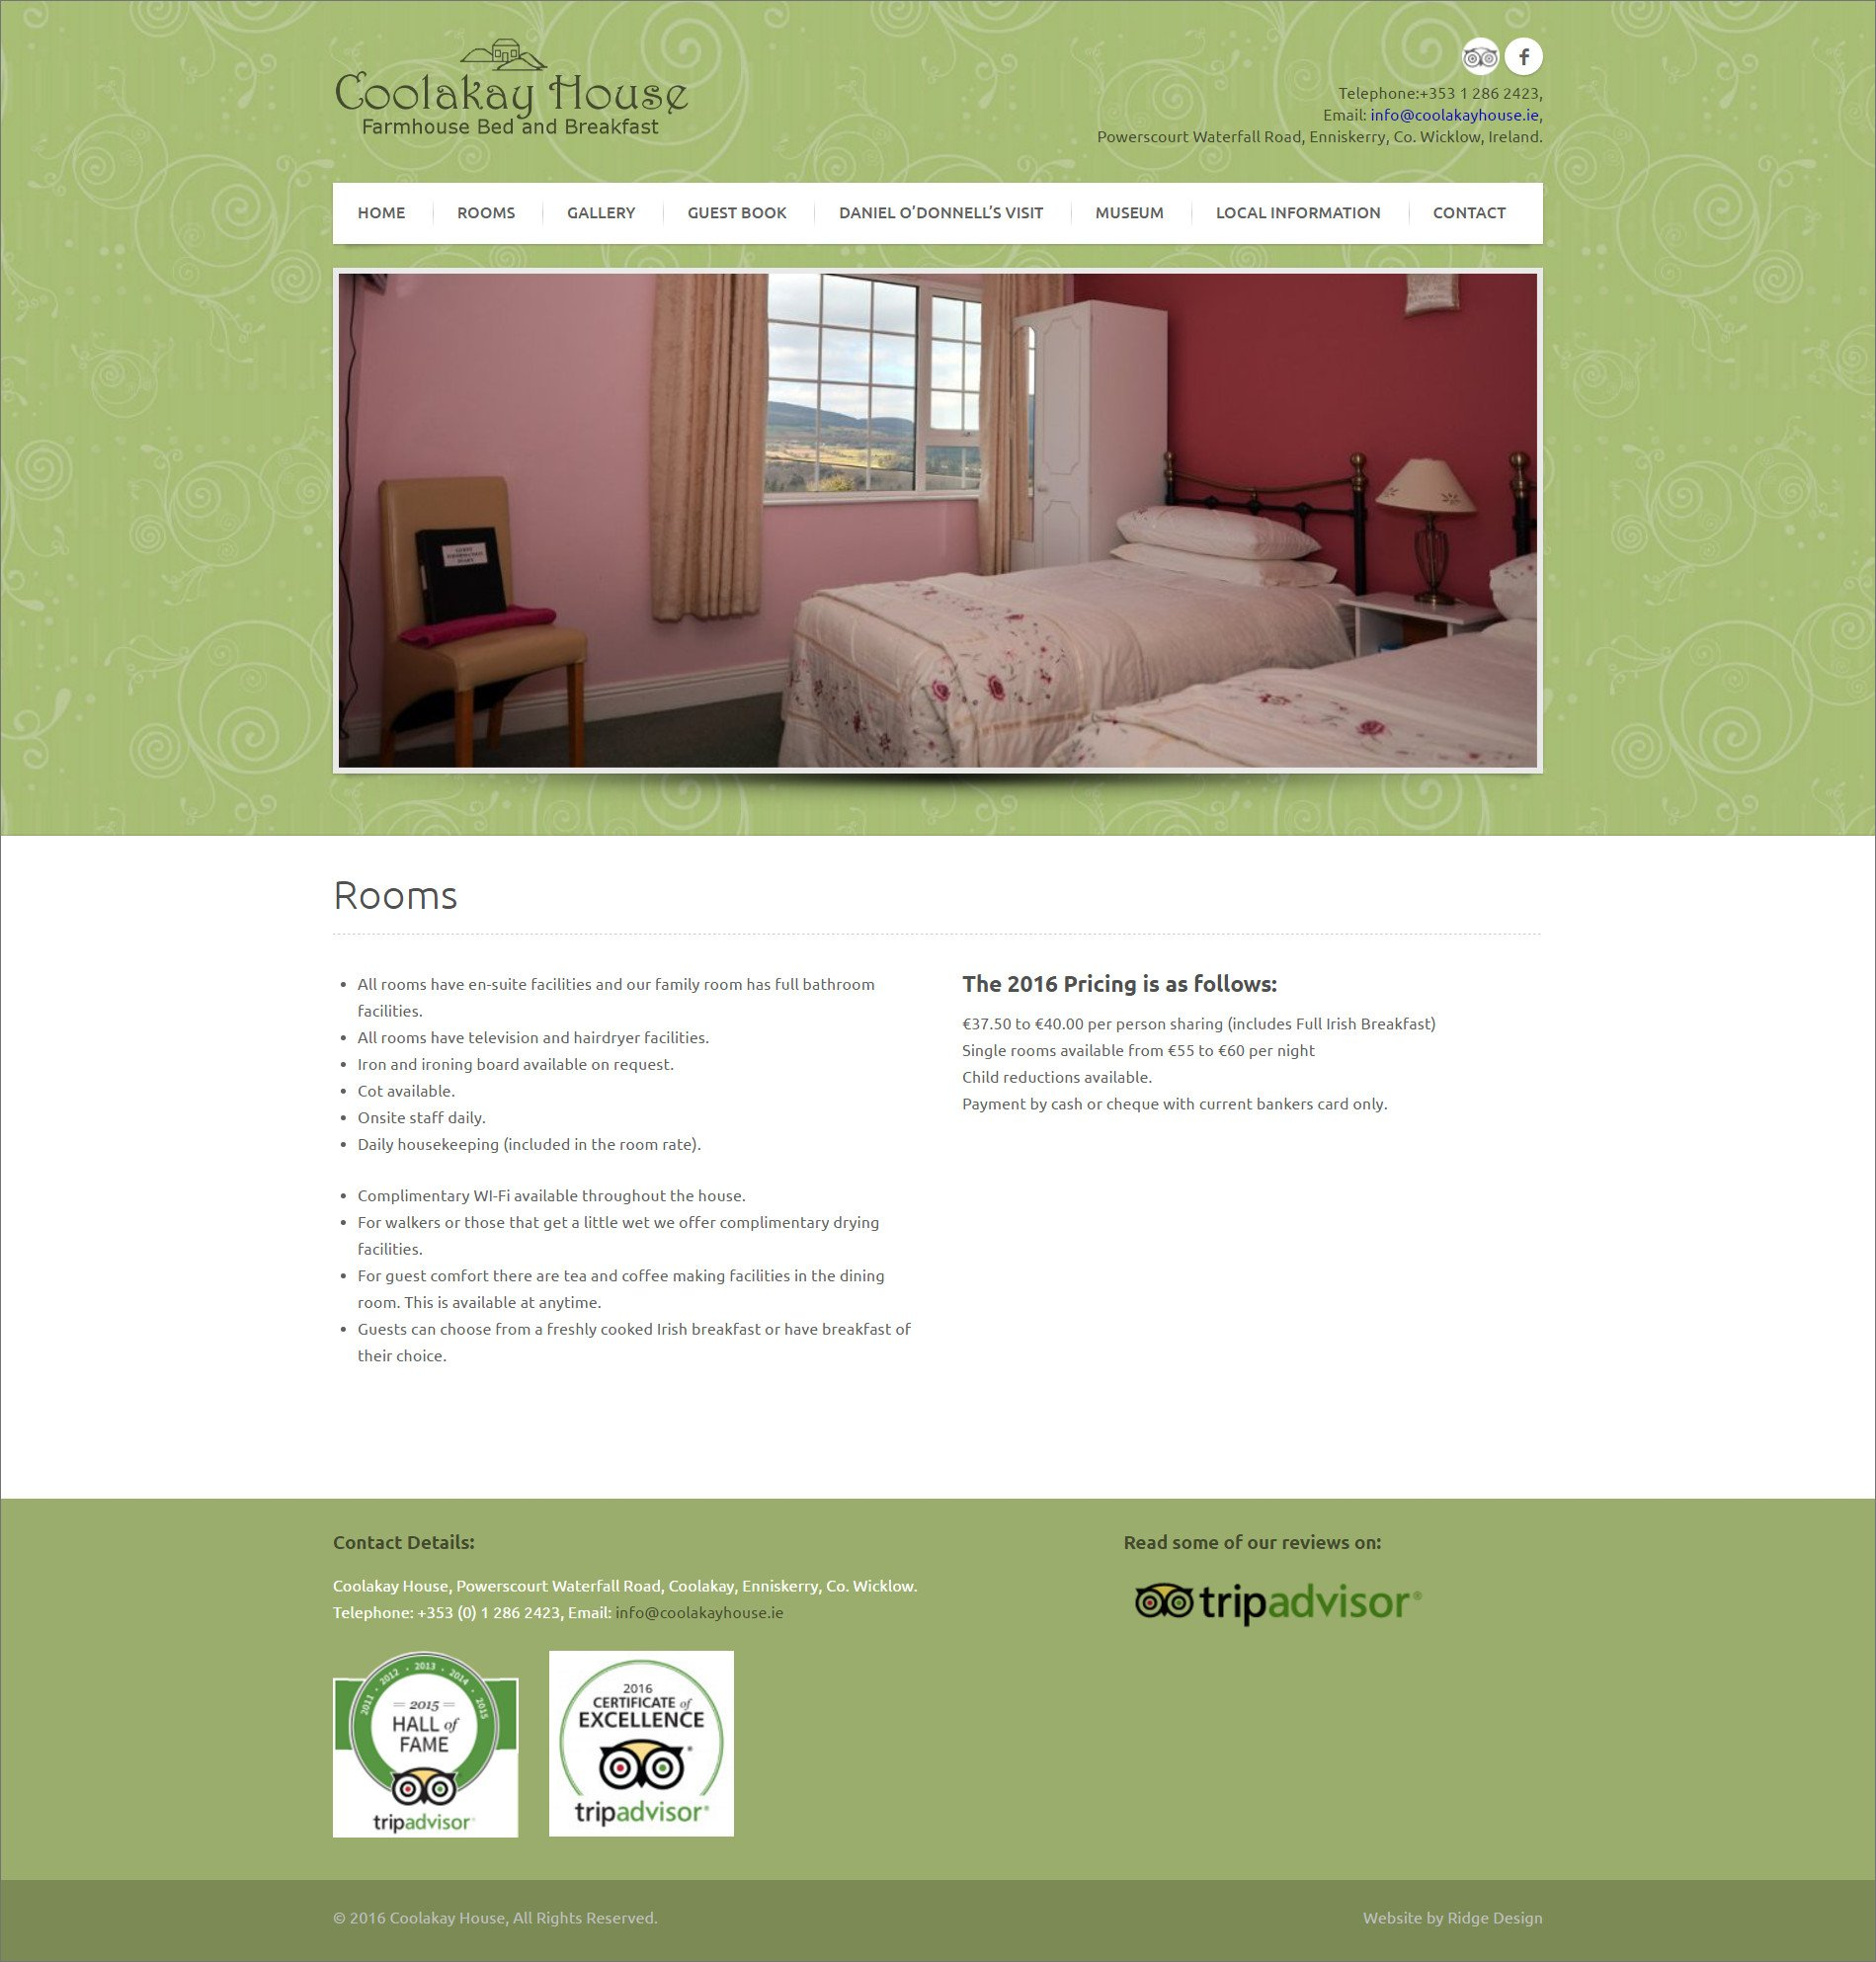 Ridge design website design coolakay rooms ridge design for Room planning website